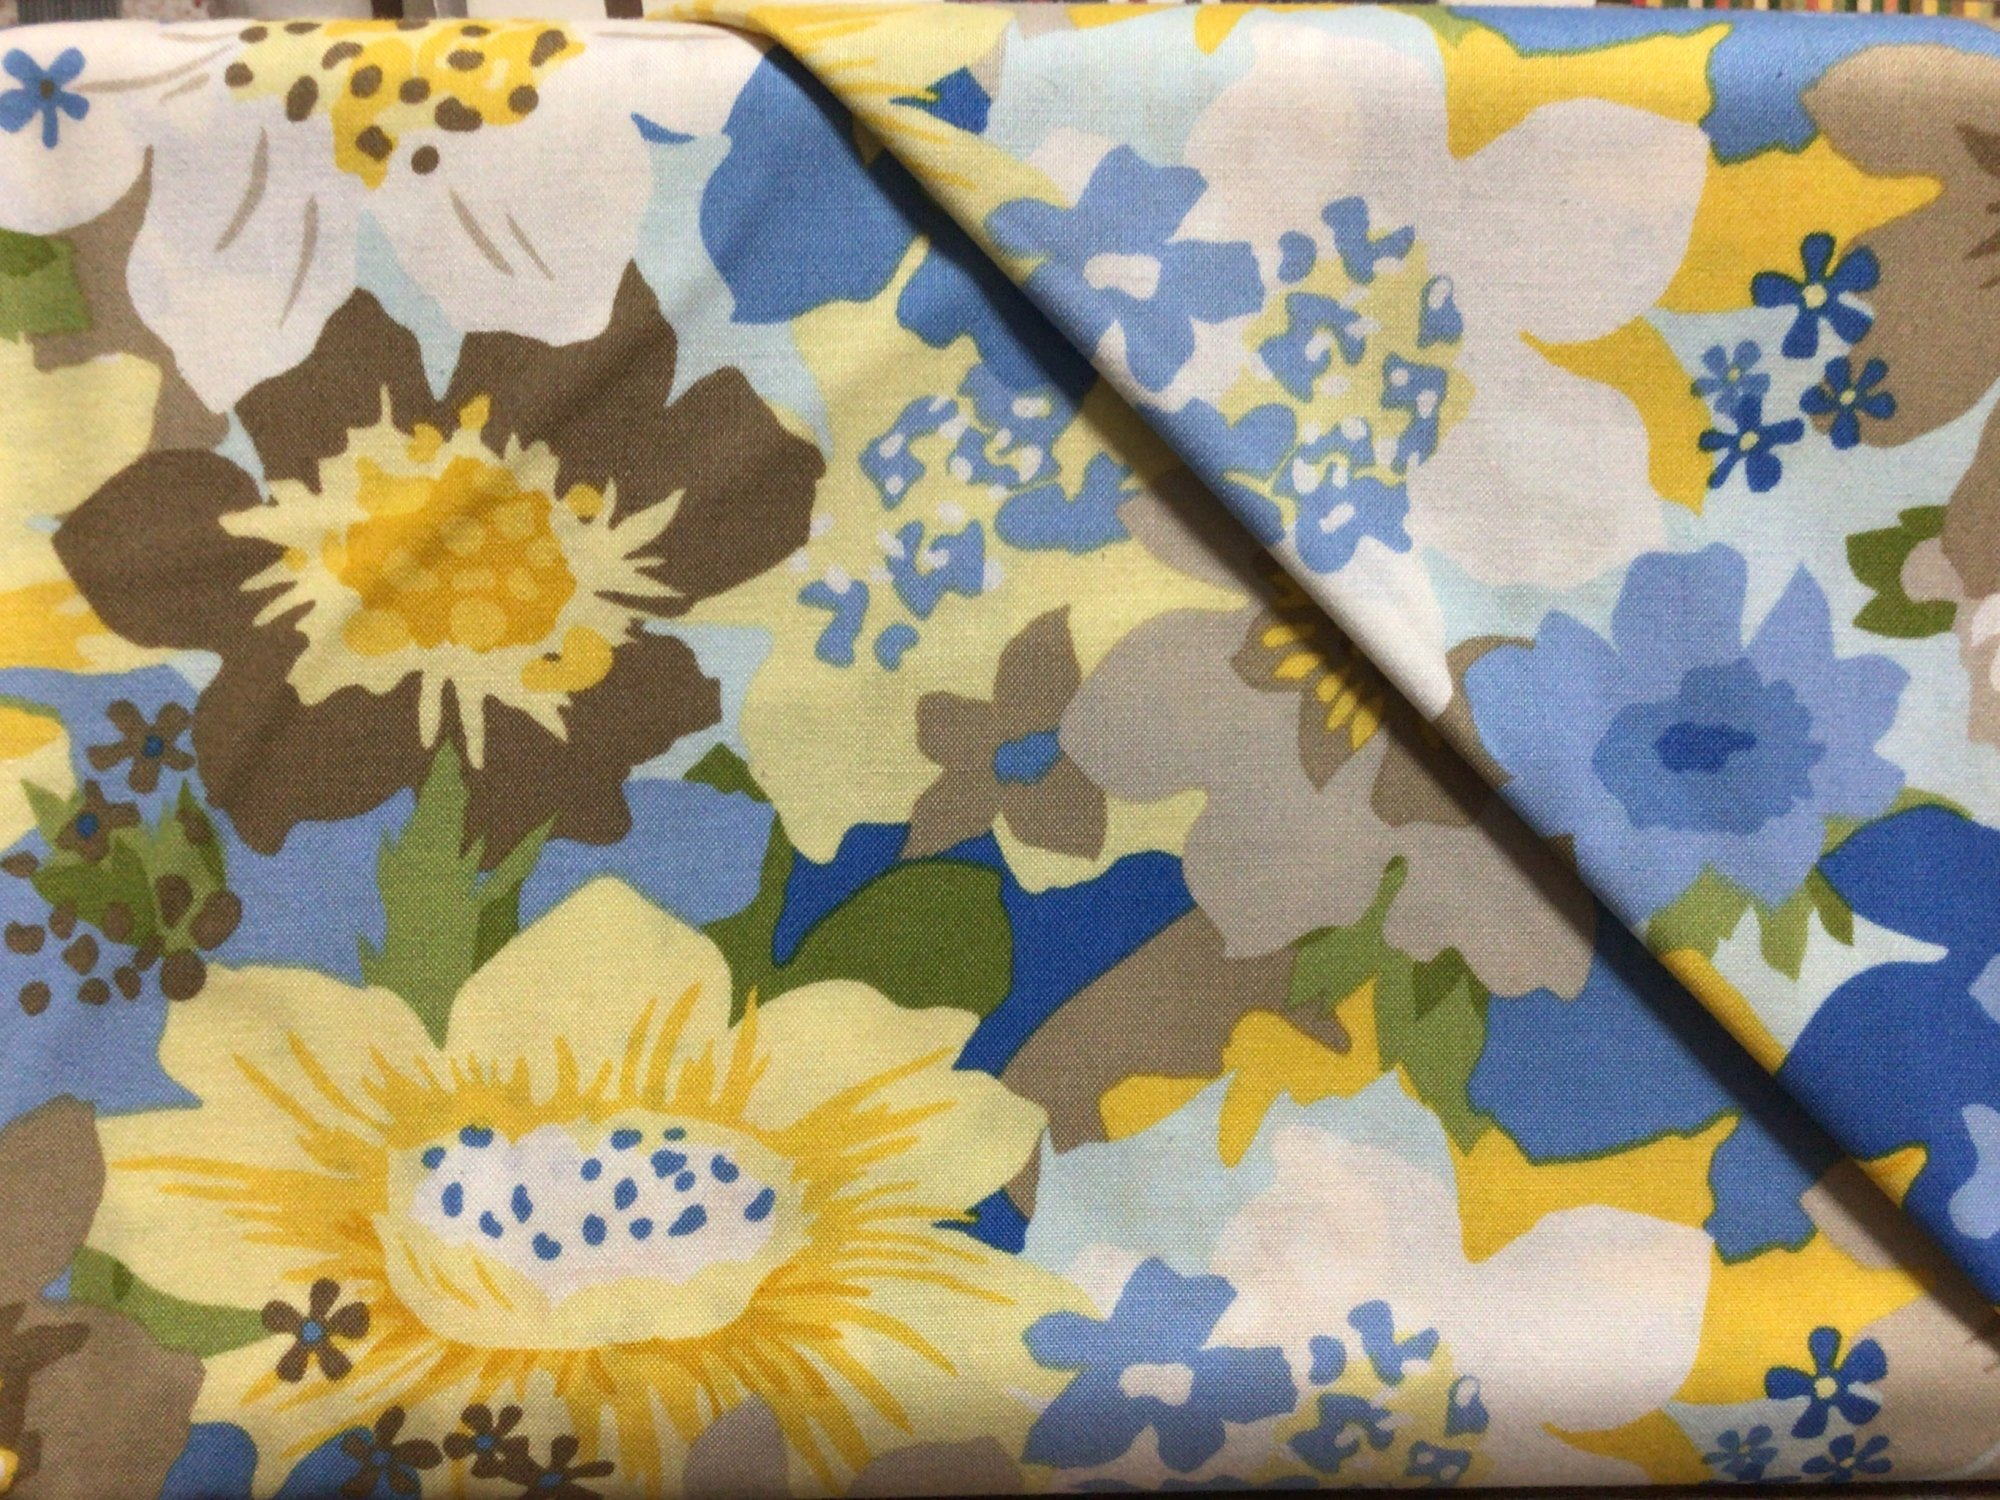 F-CB-AND-BLO-02 Andover-Blossoms-02-Blue & Yellow flowers